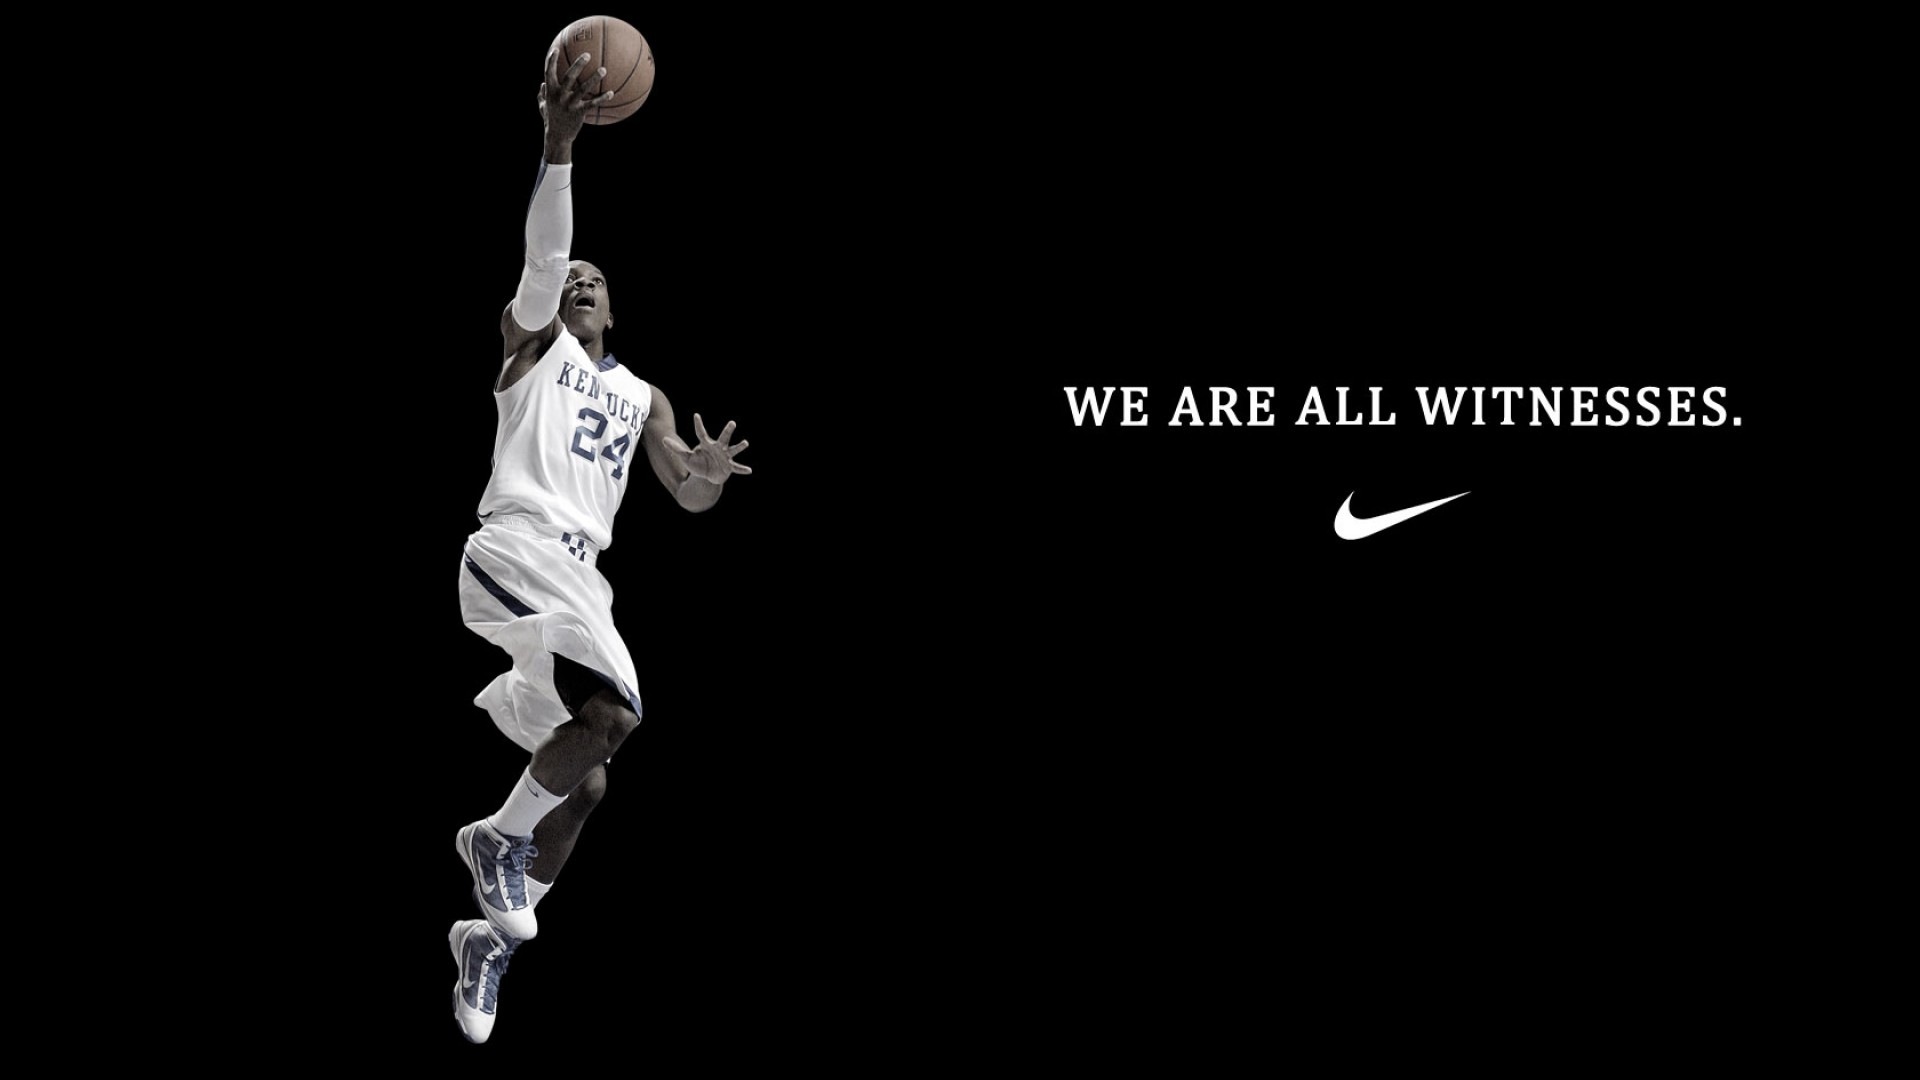 Basketball never stops wallpaper